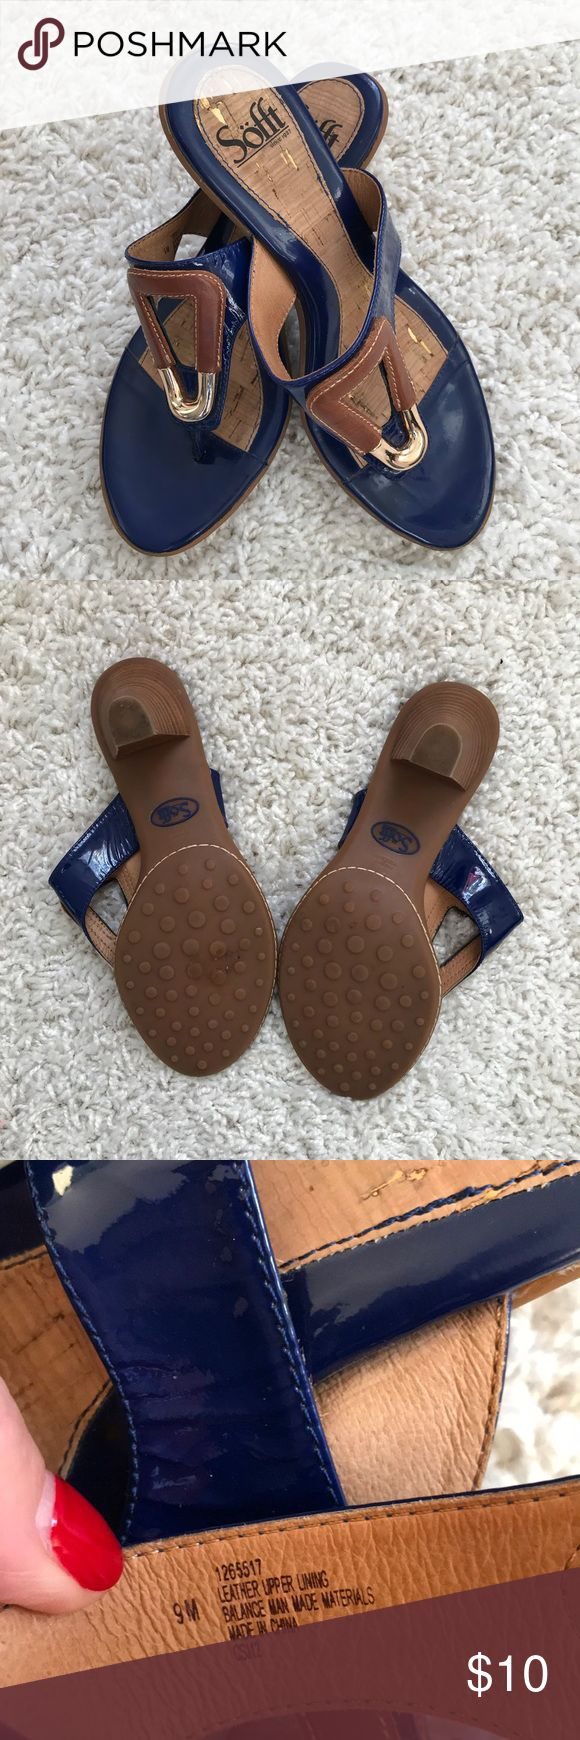 Sofft sandals EUC - worn maybe 3 times Sofft Shoes Sandals